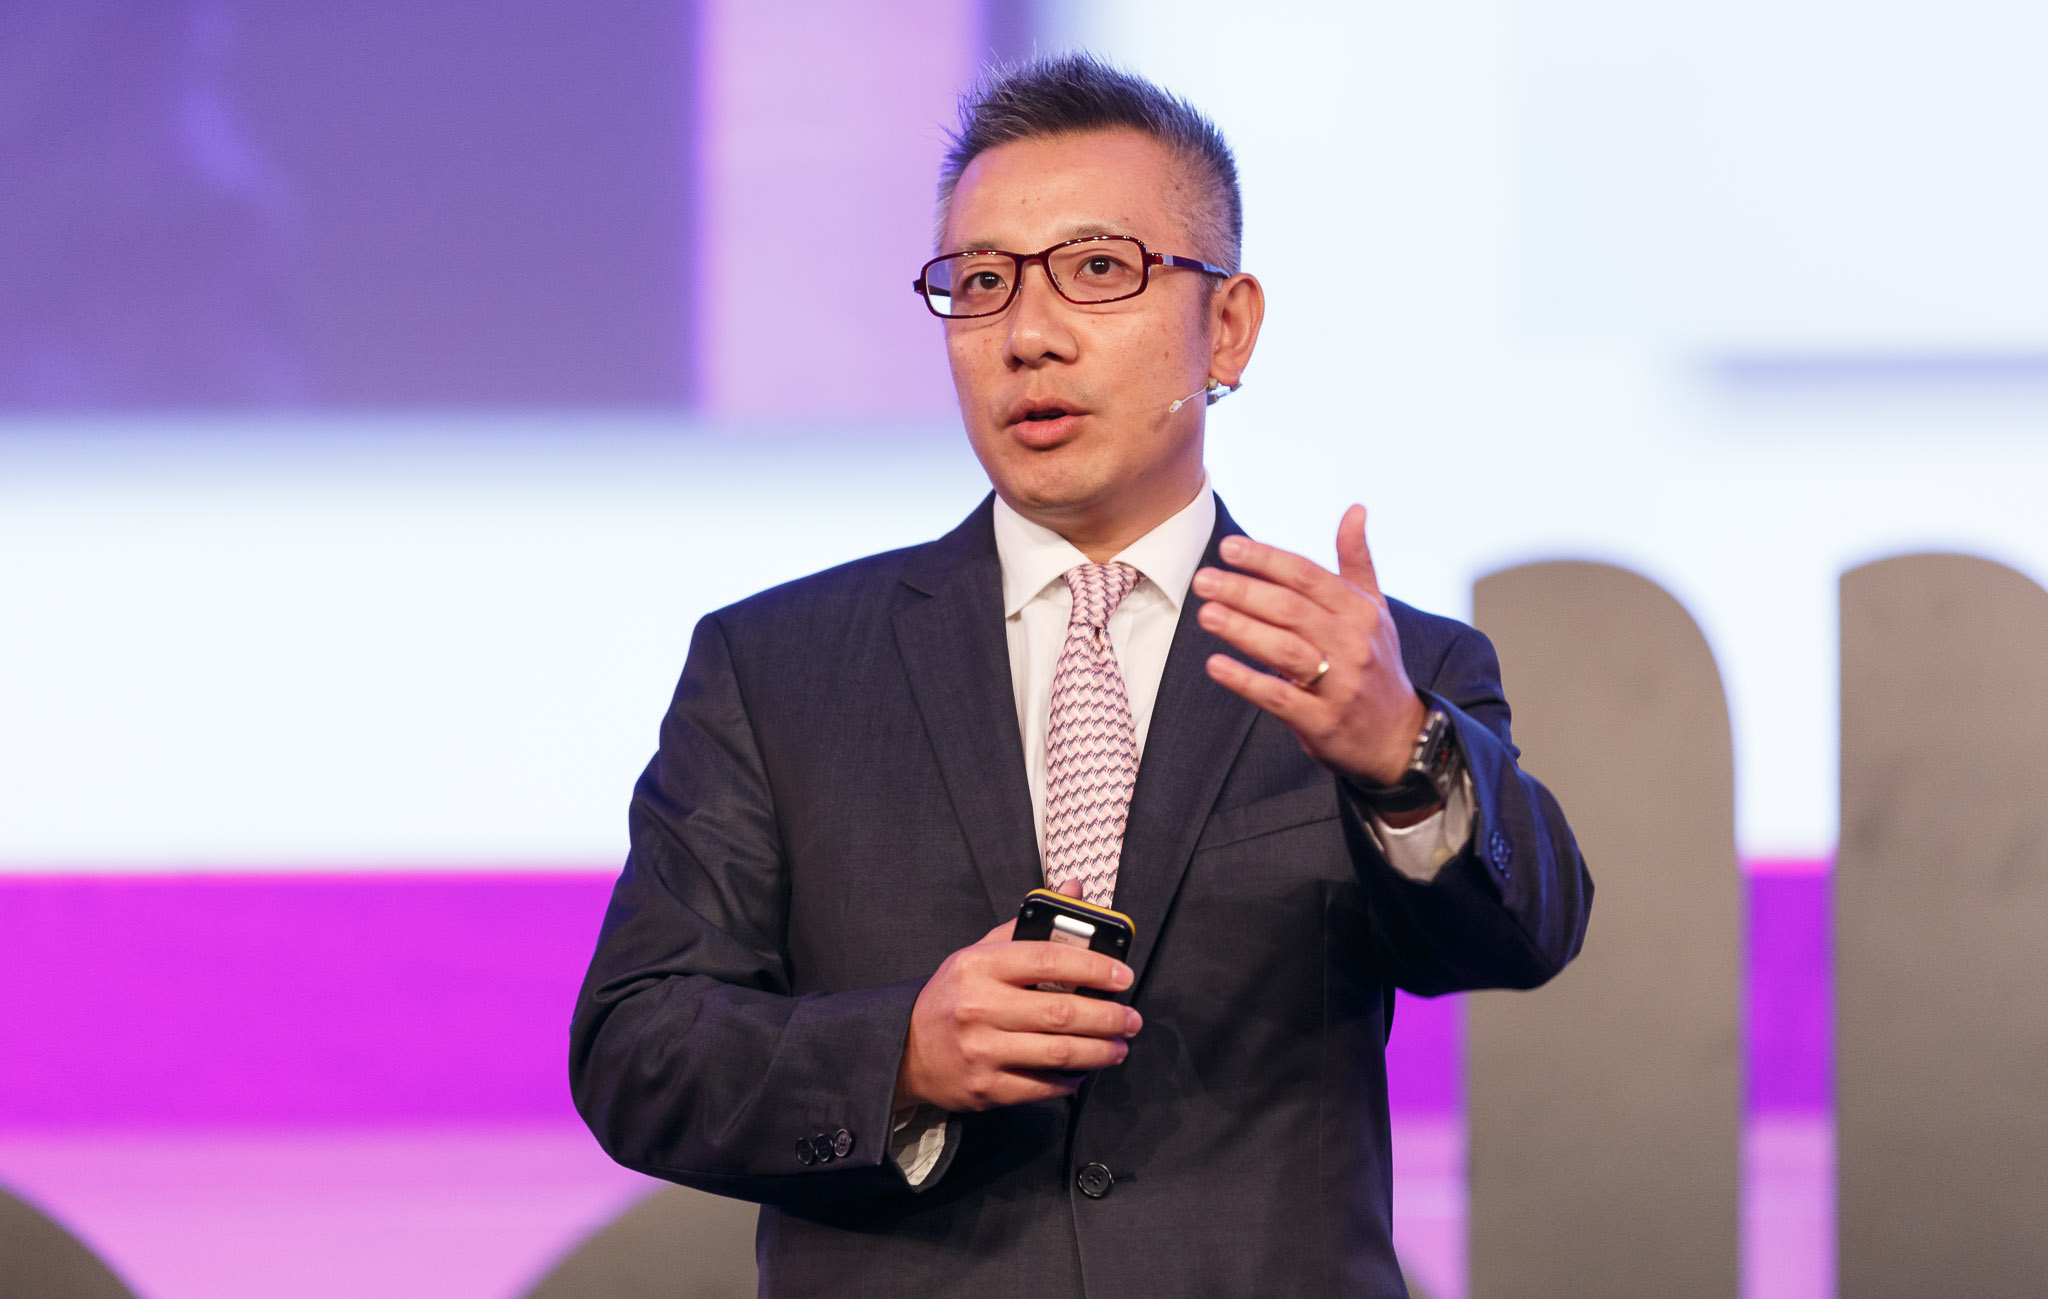 Wing Lee, CEO of YTL Communications, speaking at Broadband World Forum 2013 in Amsterdam.